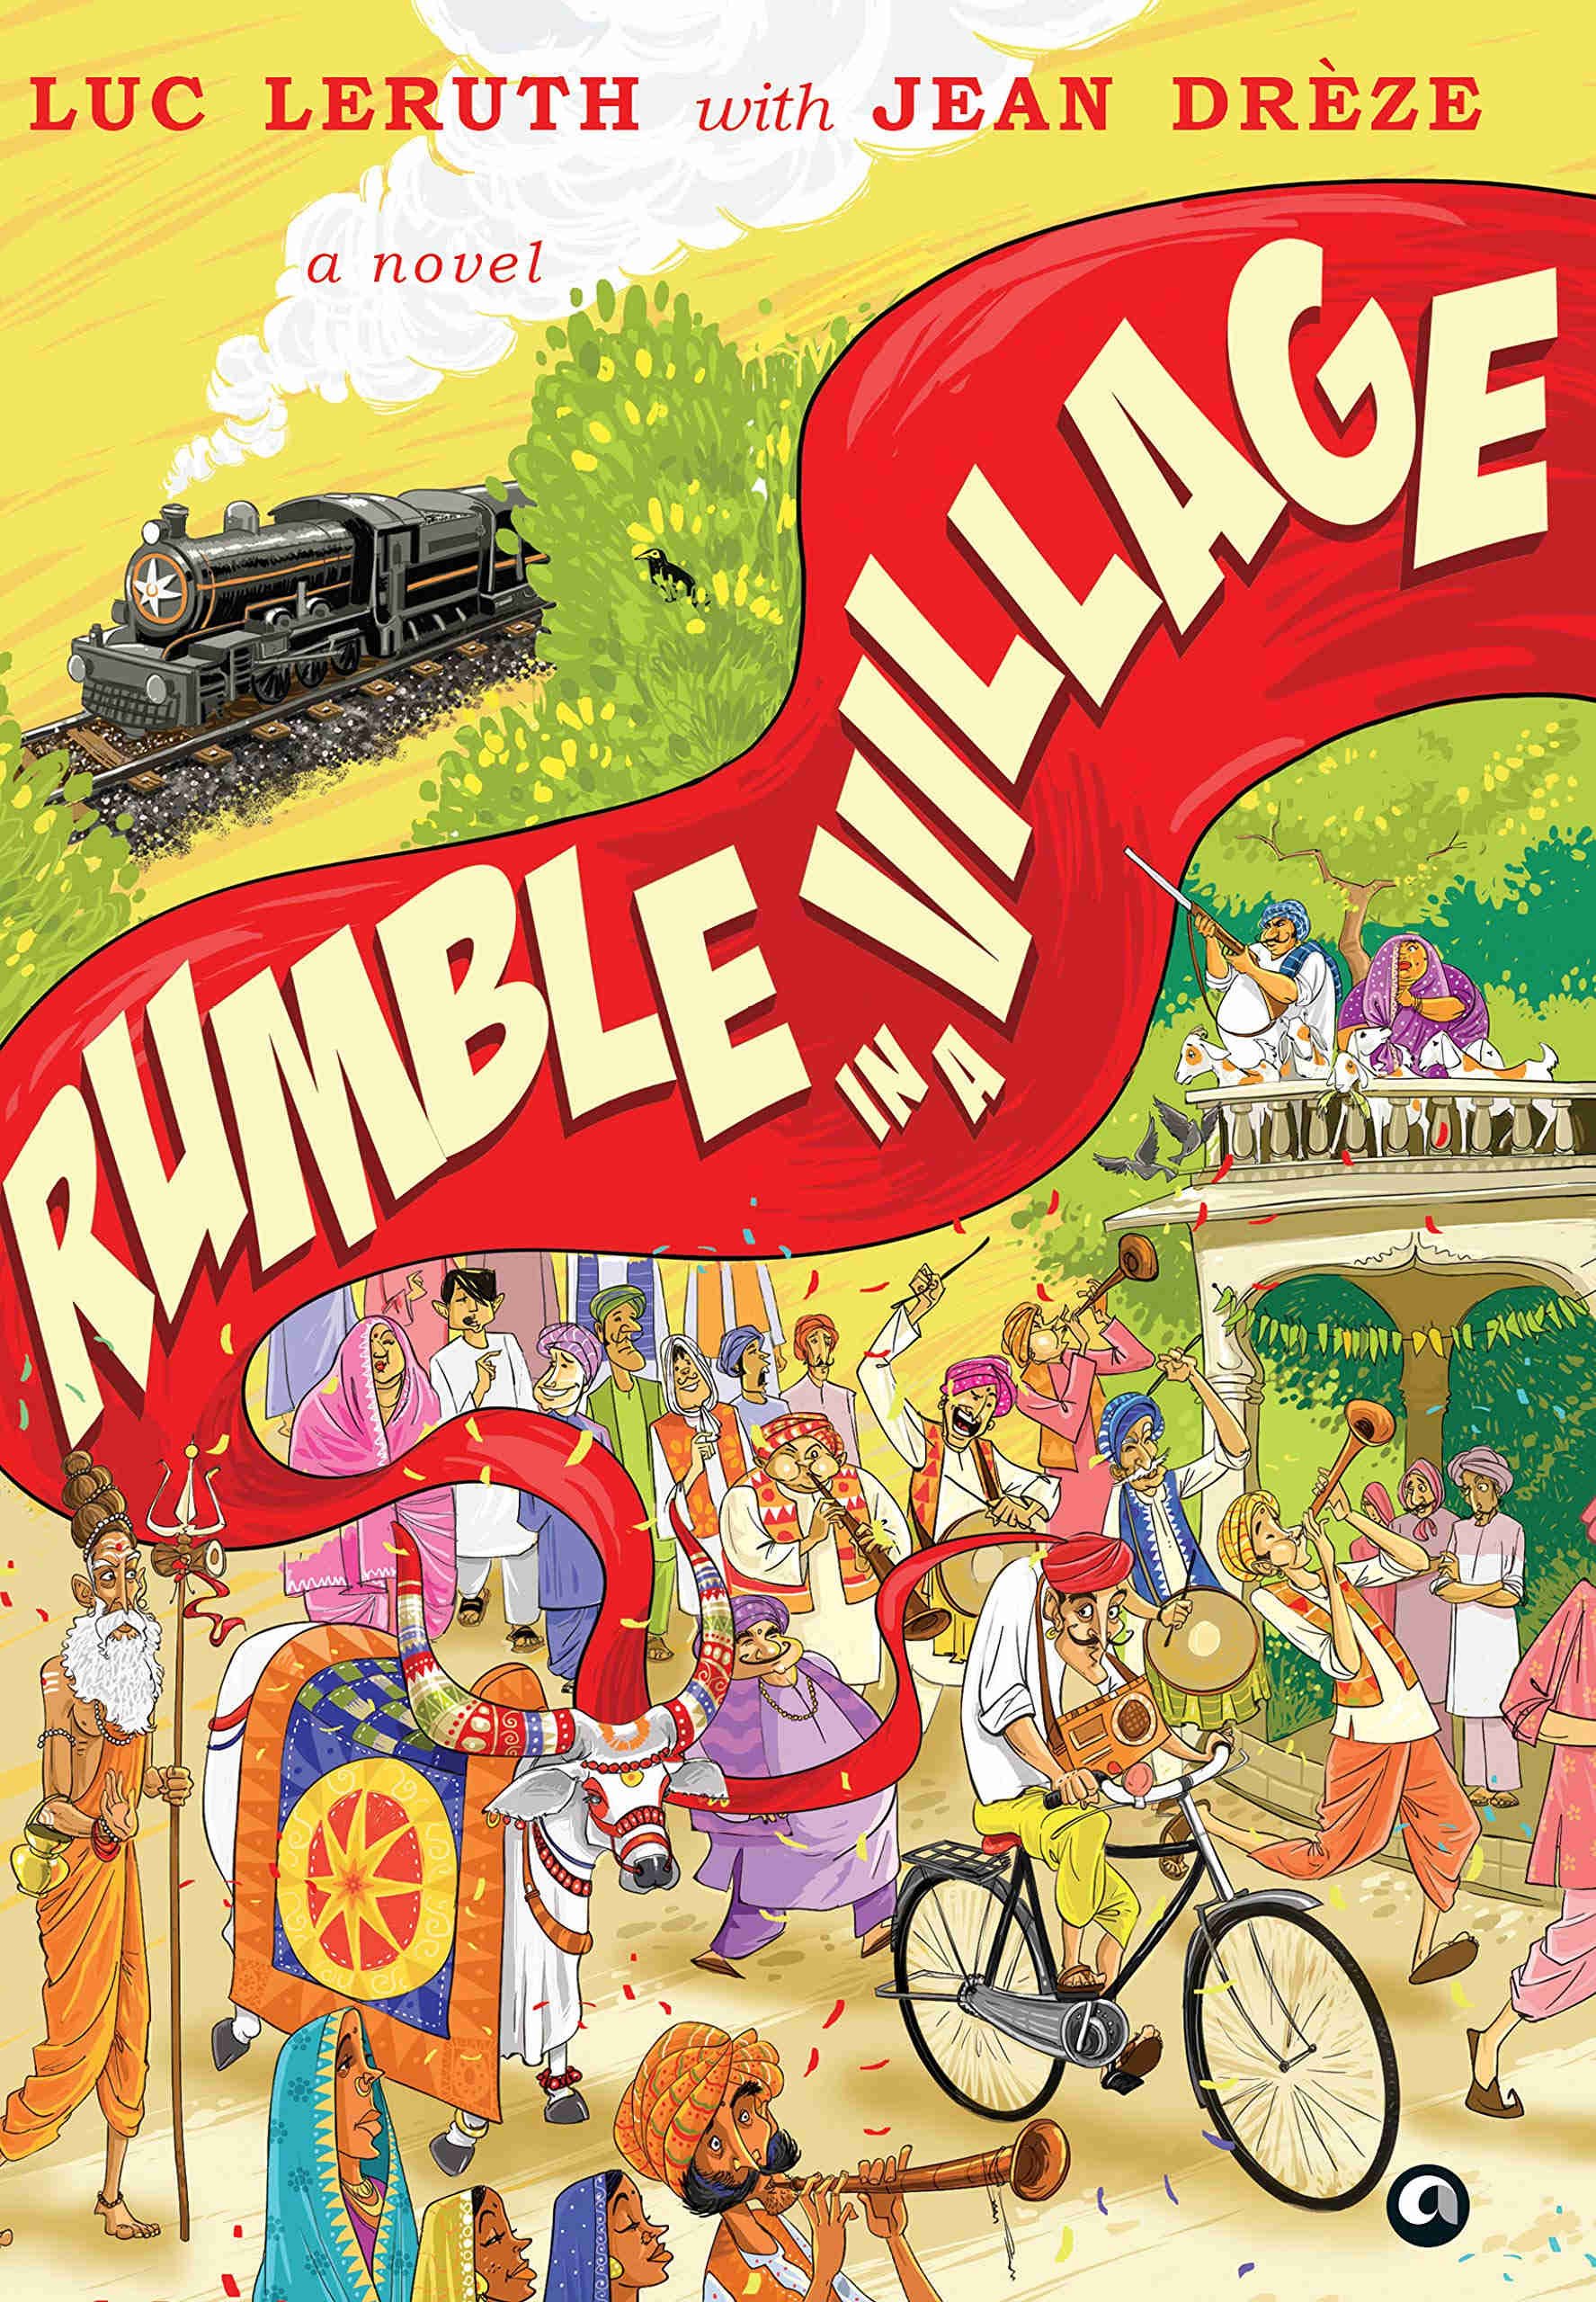 Rumble in a Village by Luc Leruth with Jean Drèze, Aleph, Rs 699